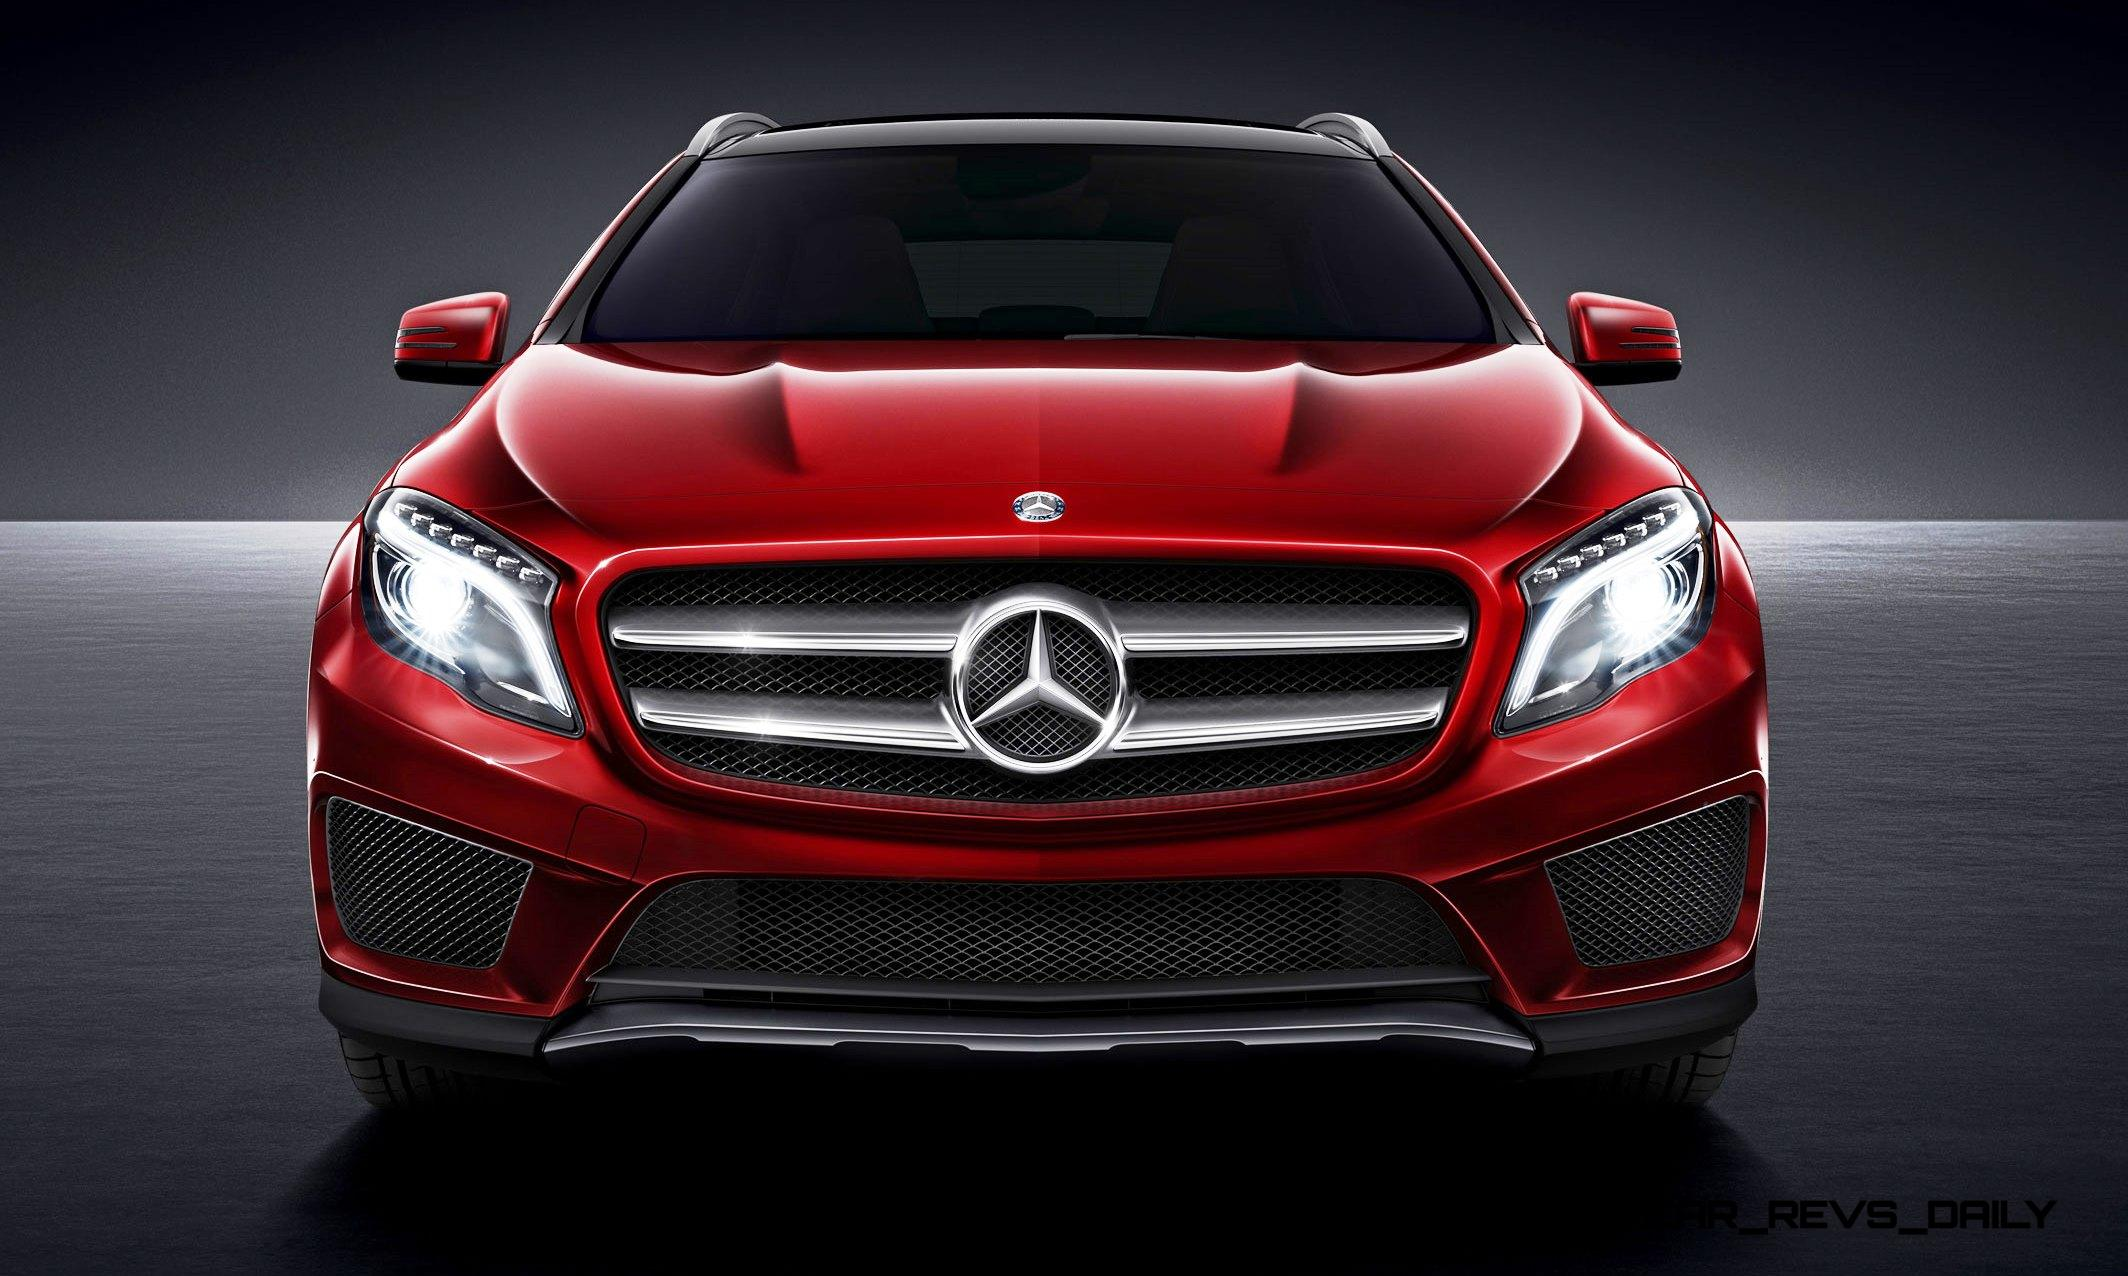 First Drive Review - 2016 Mercedes-Benz GLA250 4MATIC